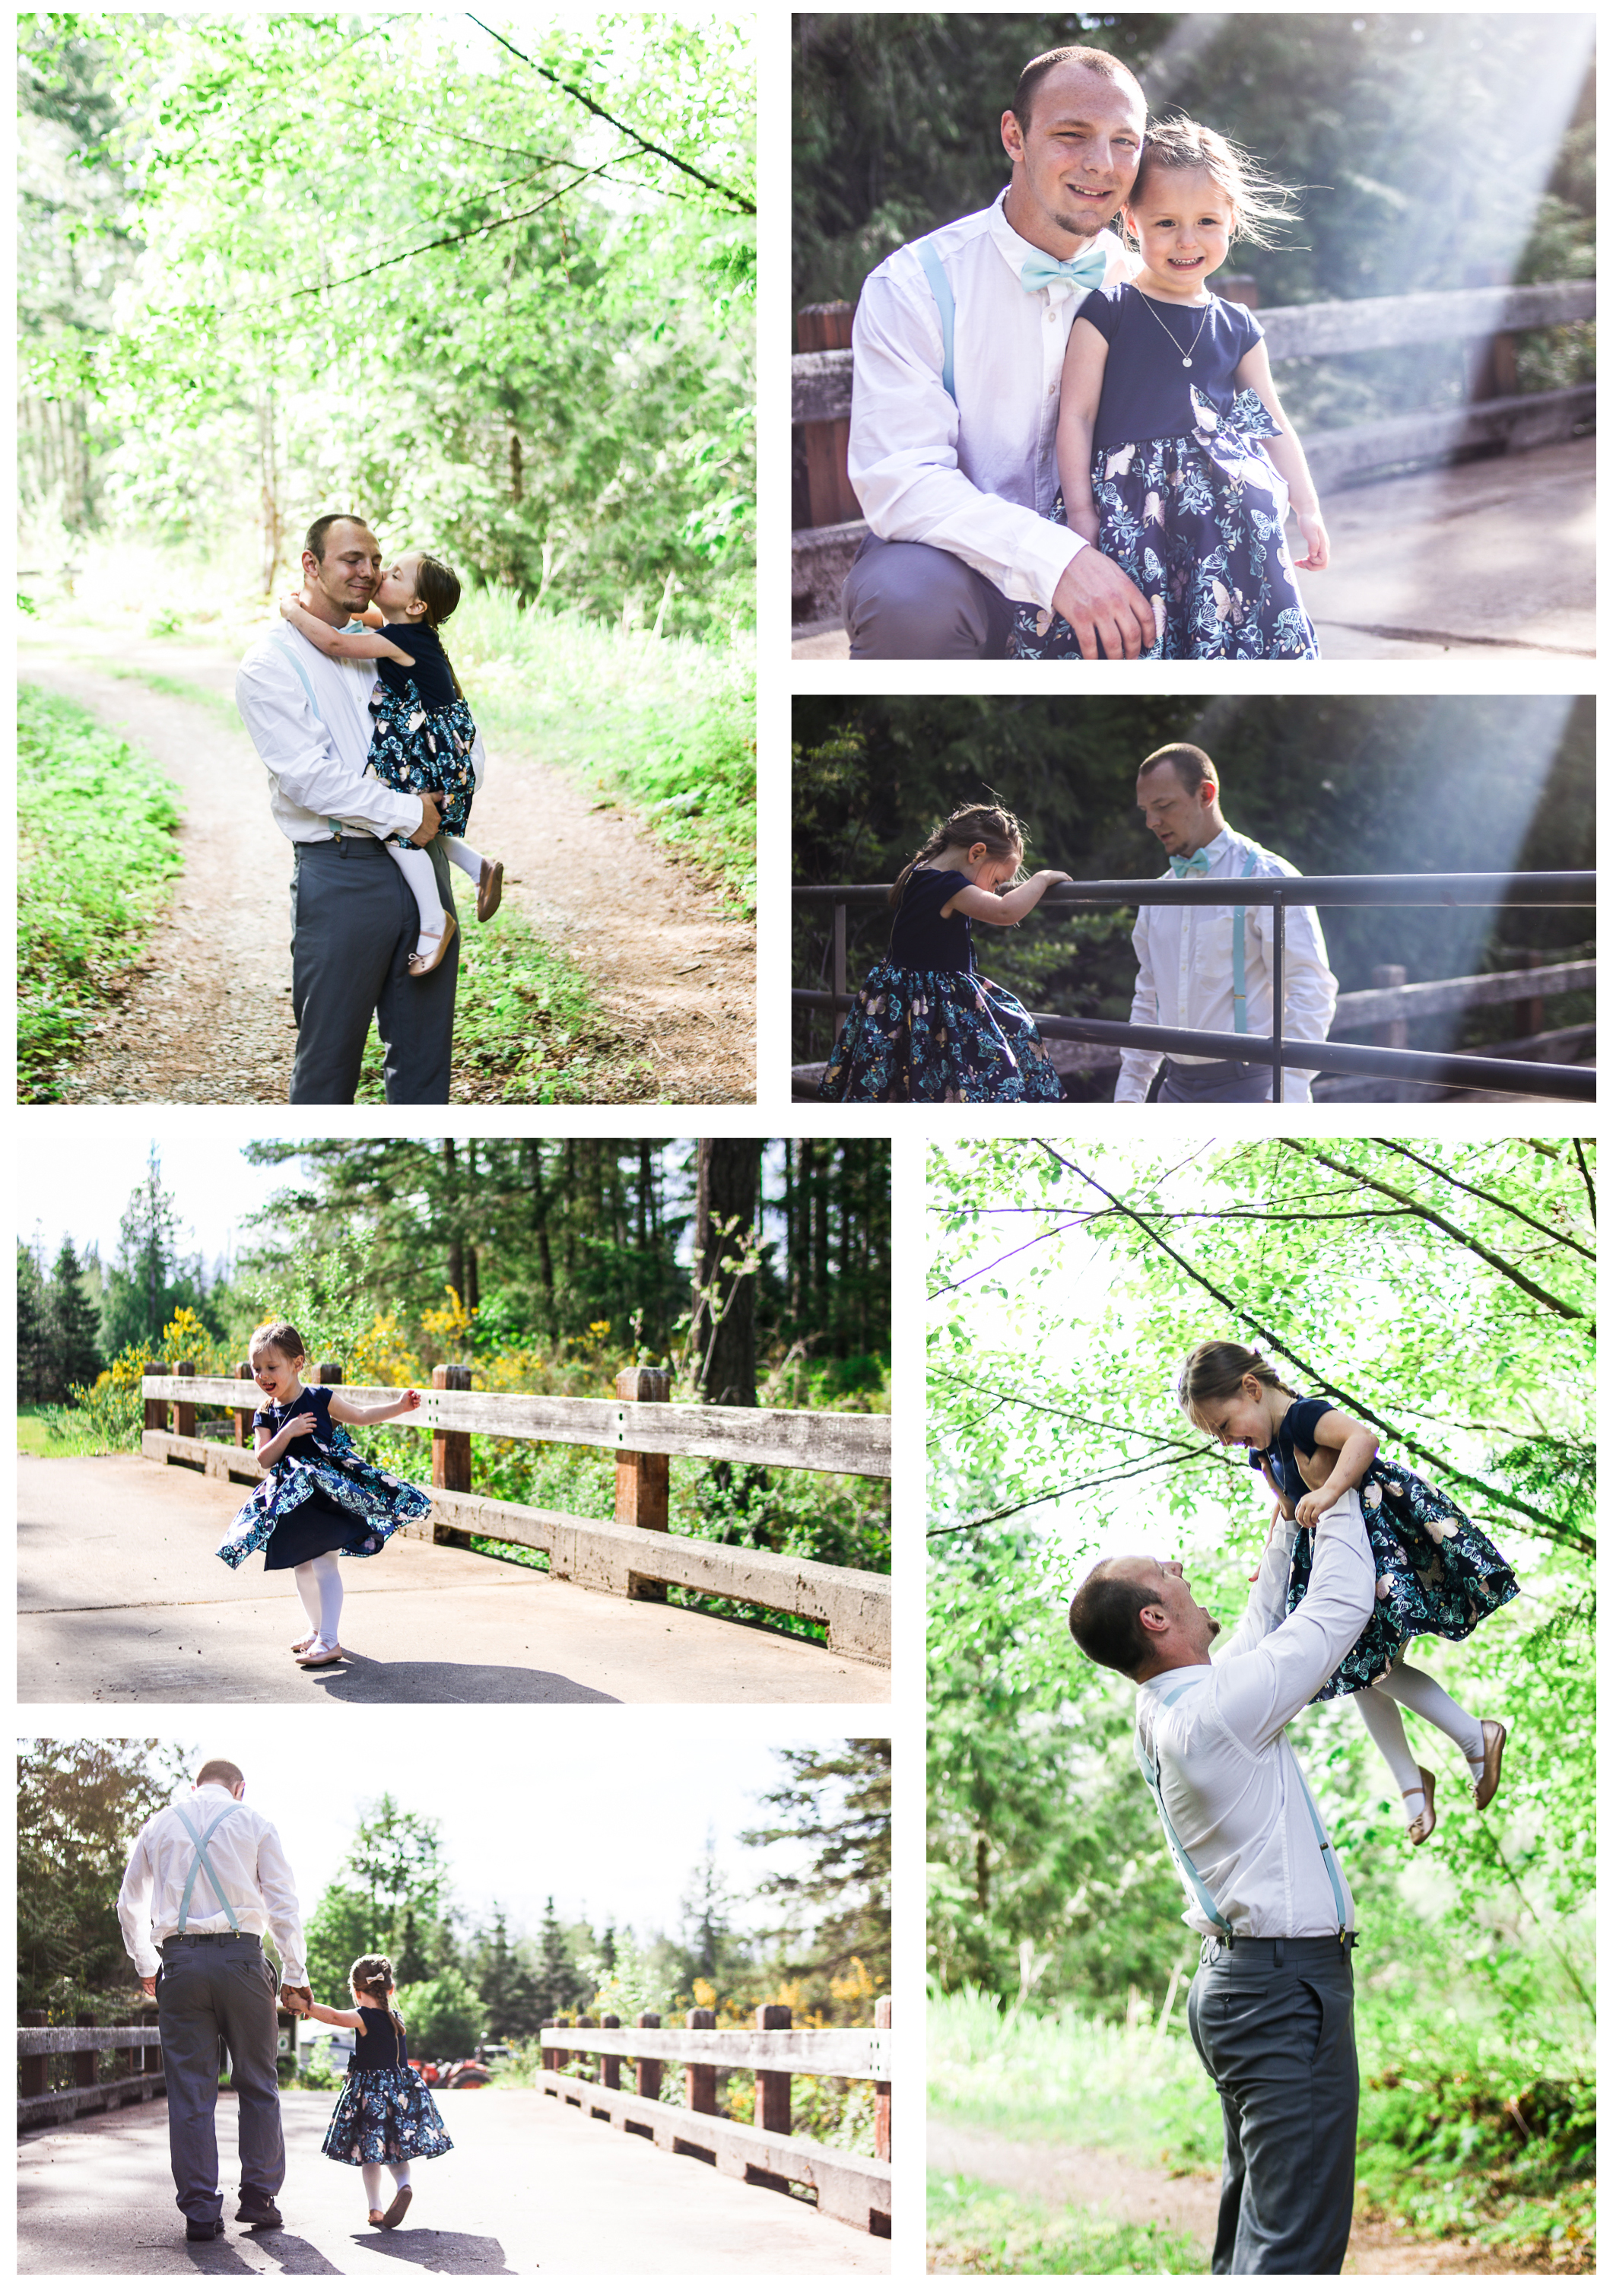 Kitsap county daddy daughter dance lifestyle adventure session PNW photography